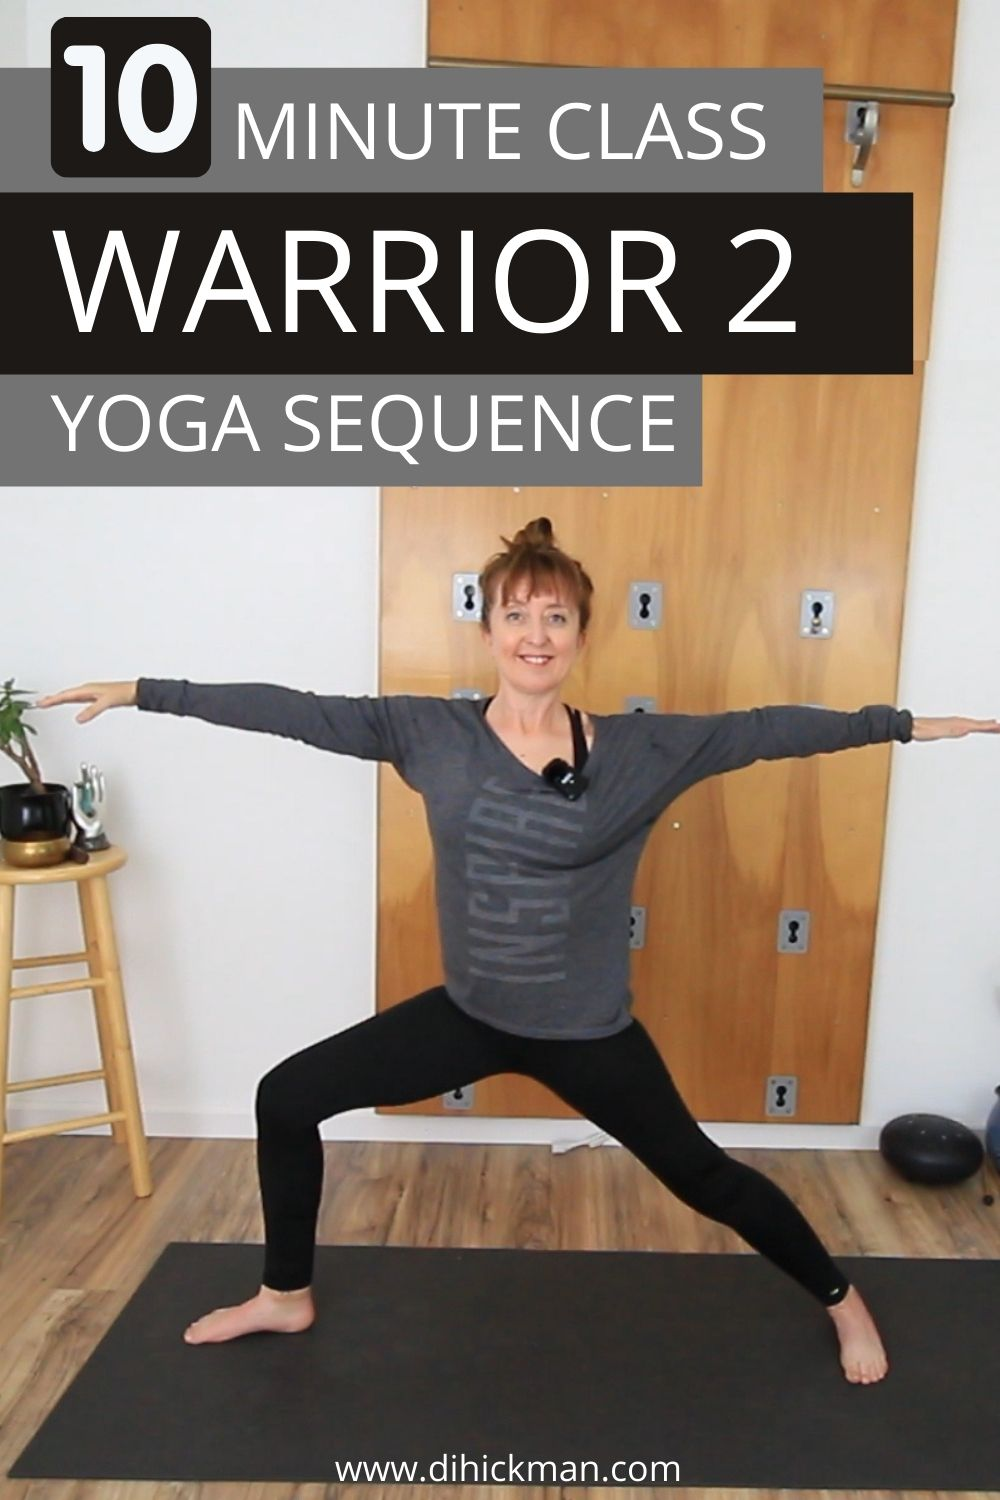 10 minute class, warrior 2 yoga sequence